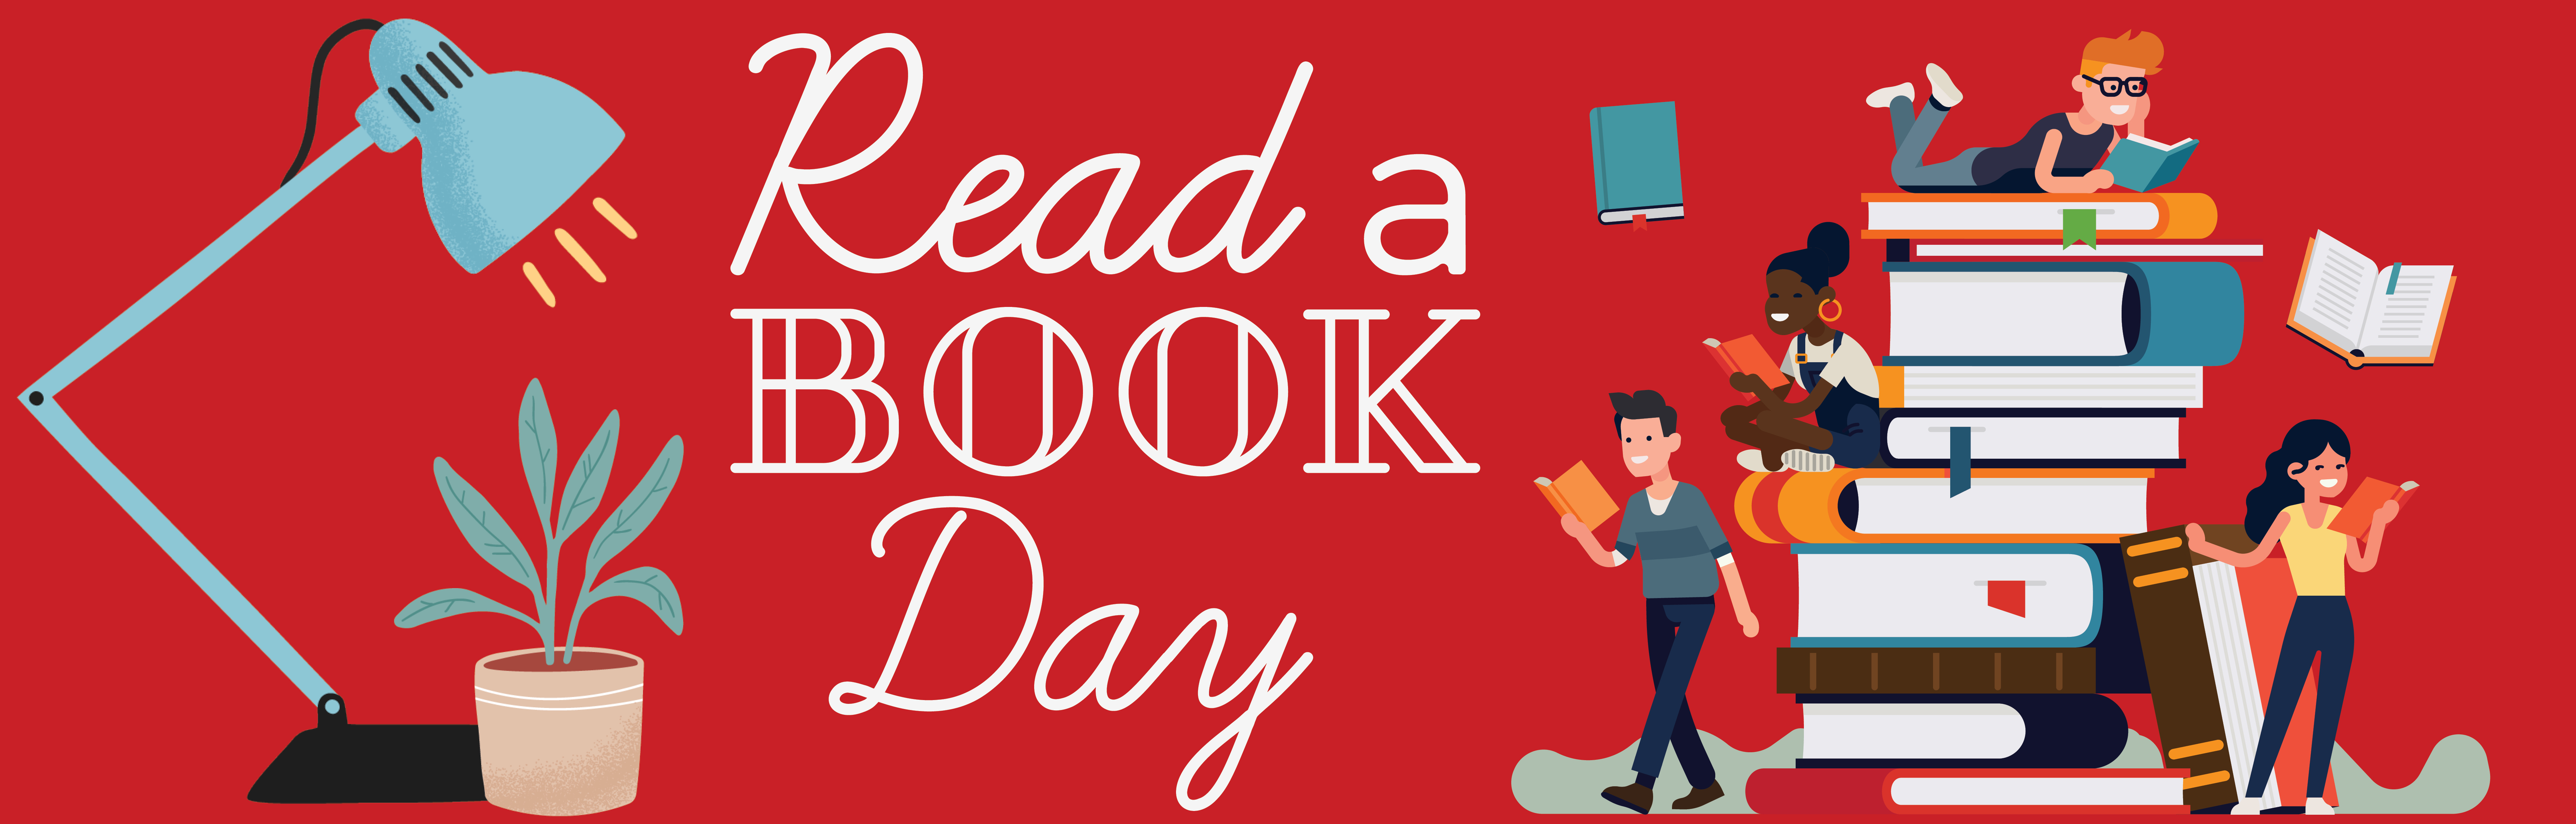 Read a Book Day, Read a Book Day Graphic, September 6, Read a Book Day Banner